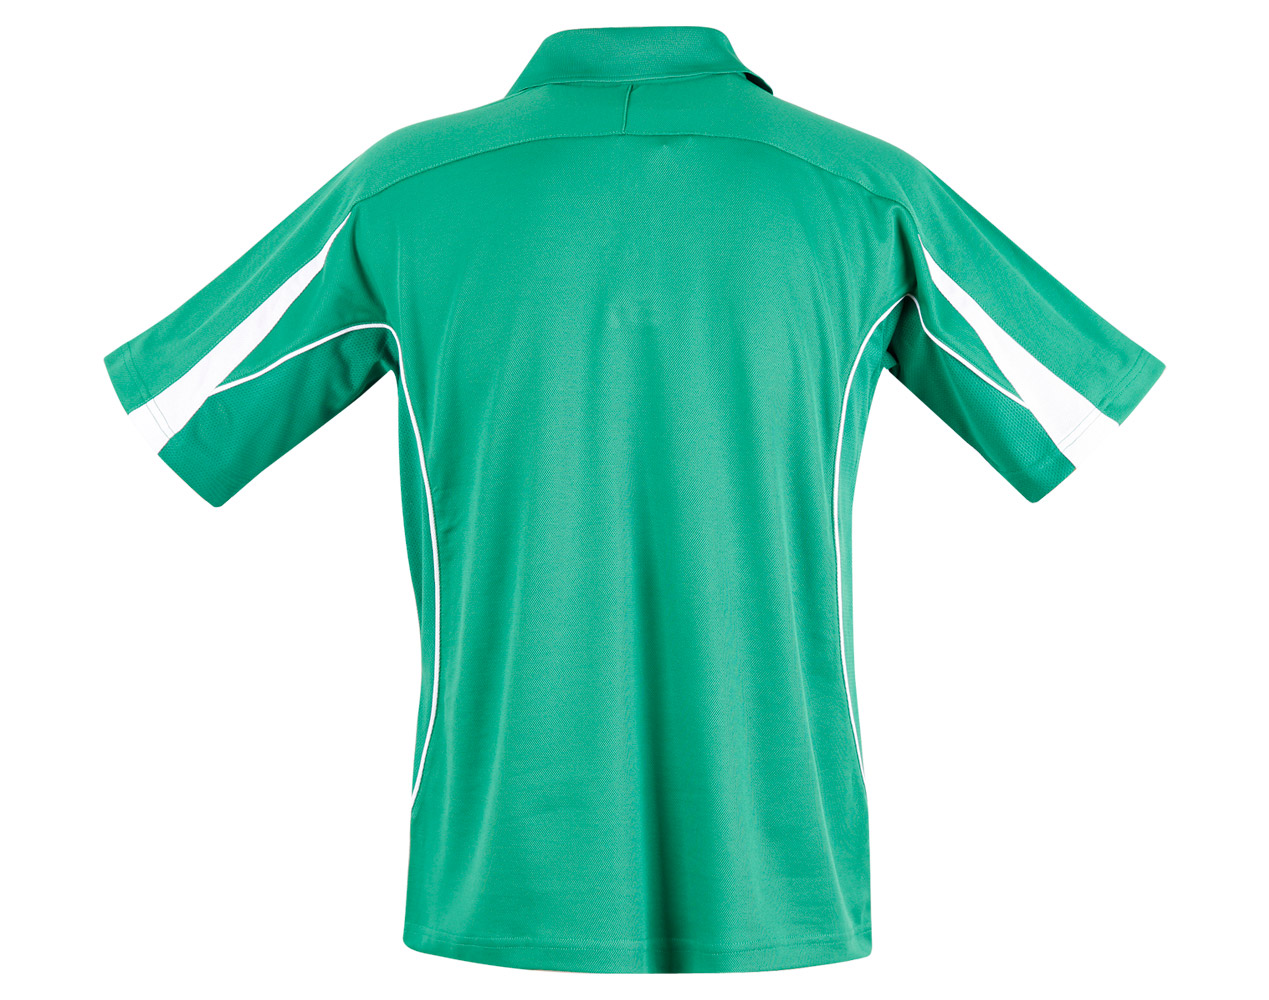 https://s3-ap-southeast-1.amazonaws.com/ws-imgs/POLOSHIRTS/PS53_EmeralGreenWhite_Back.jpg